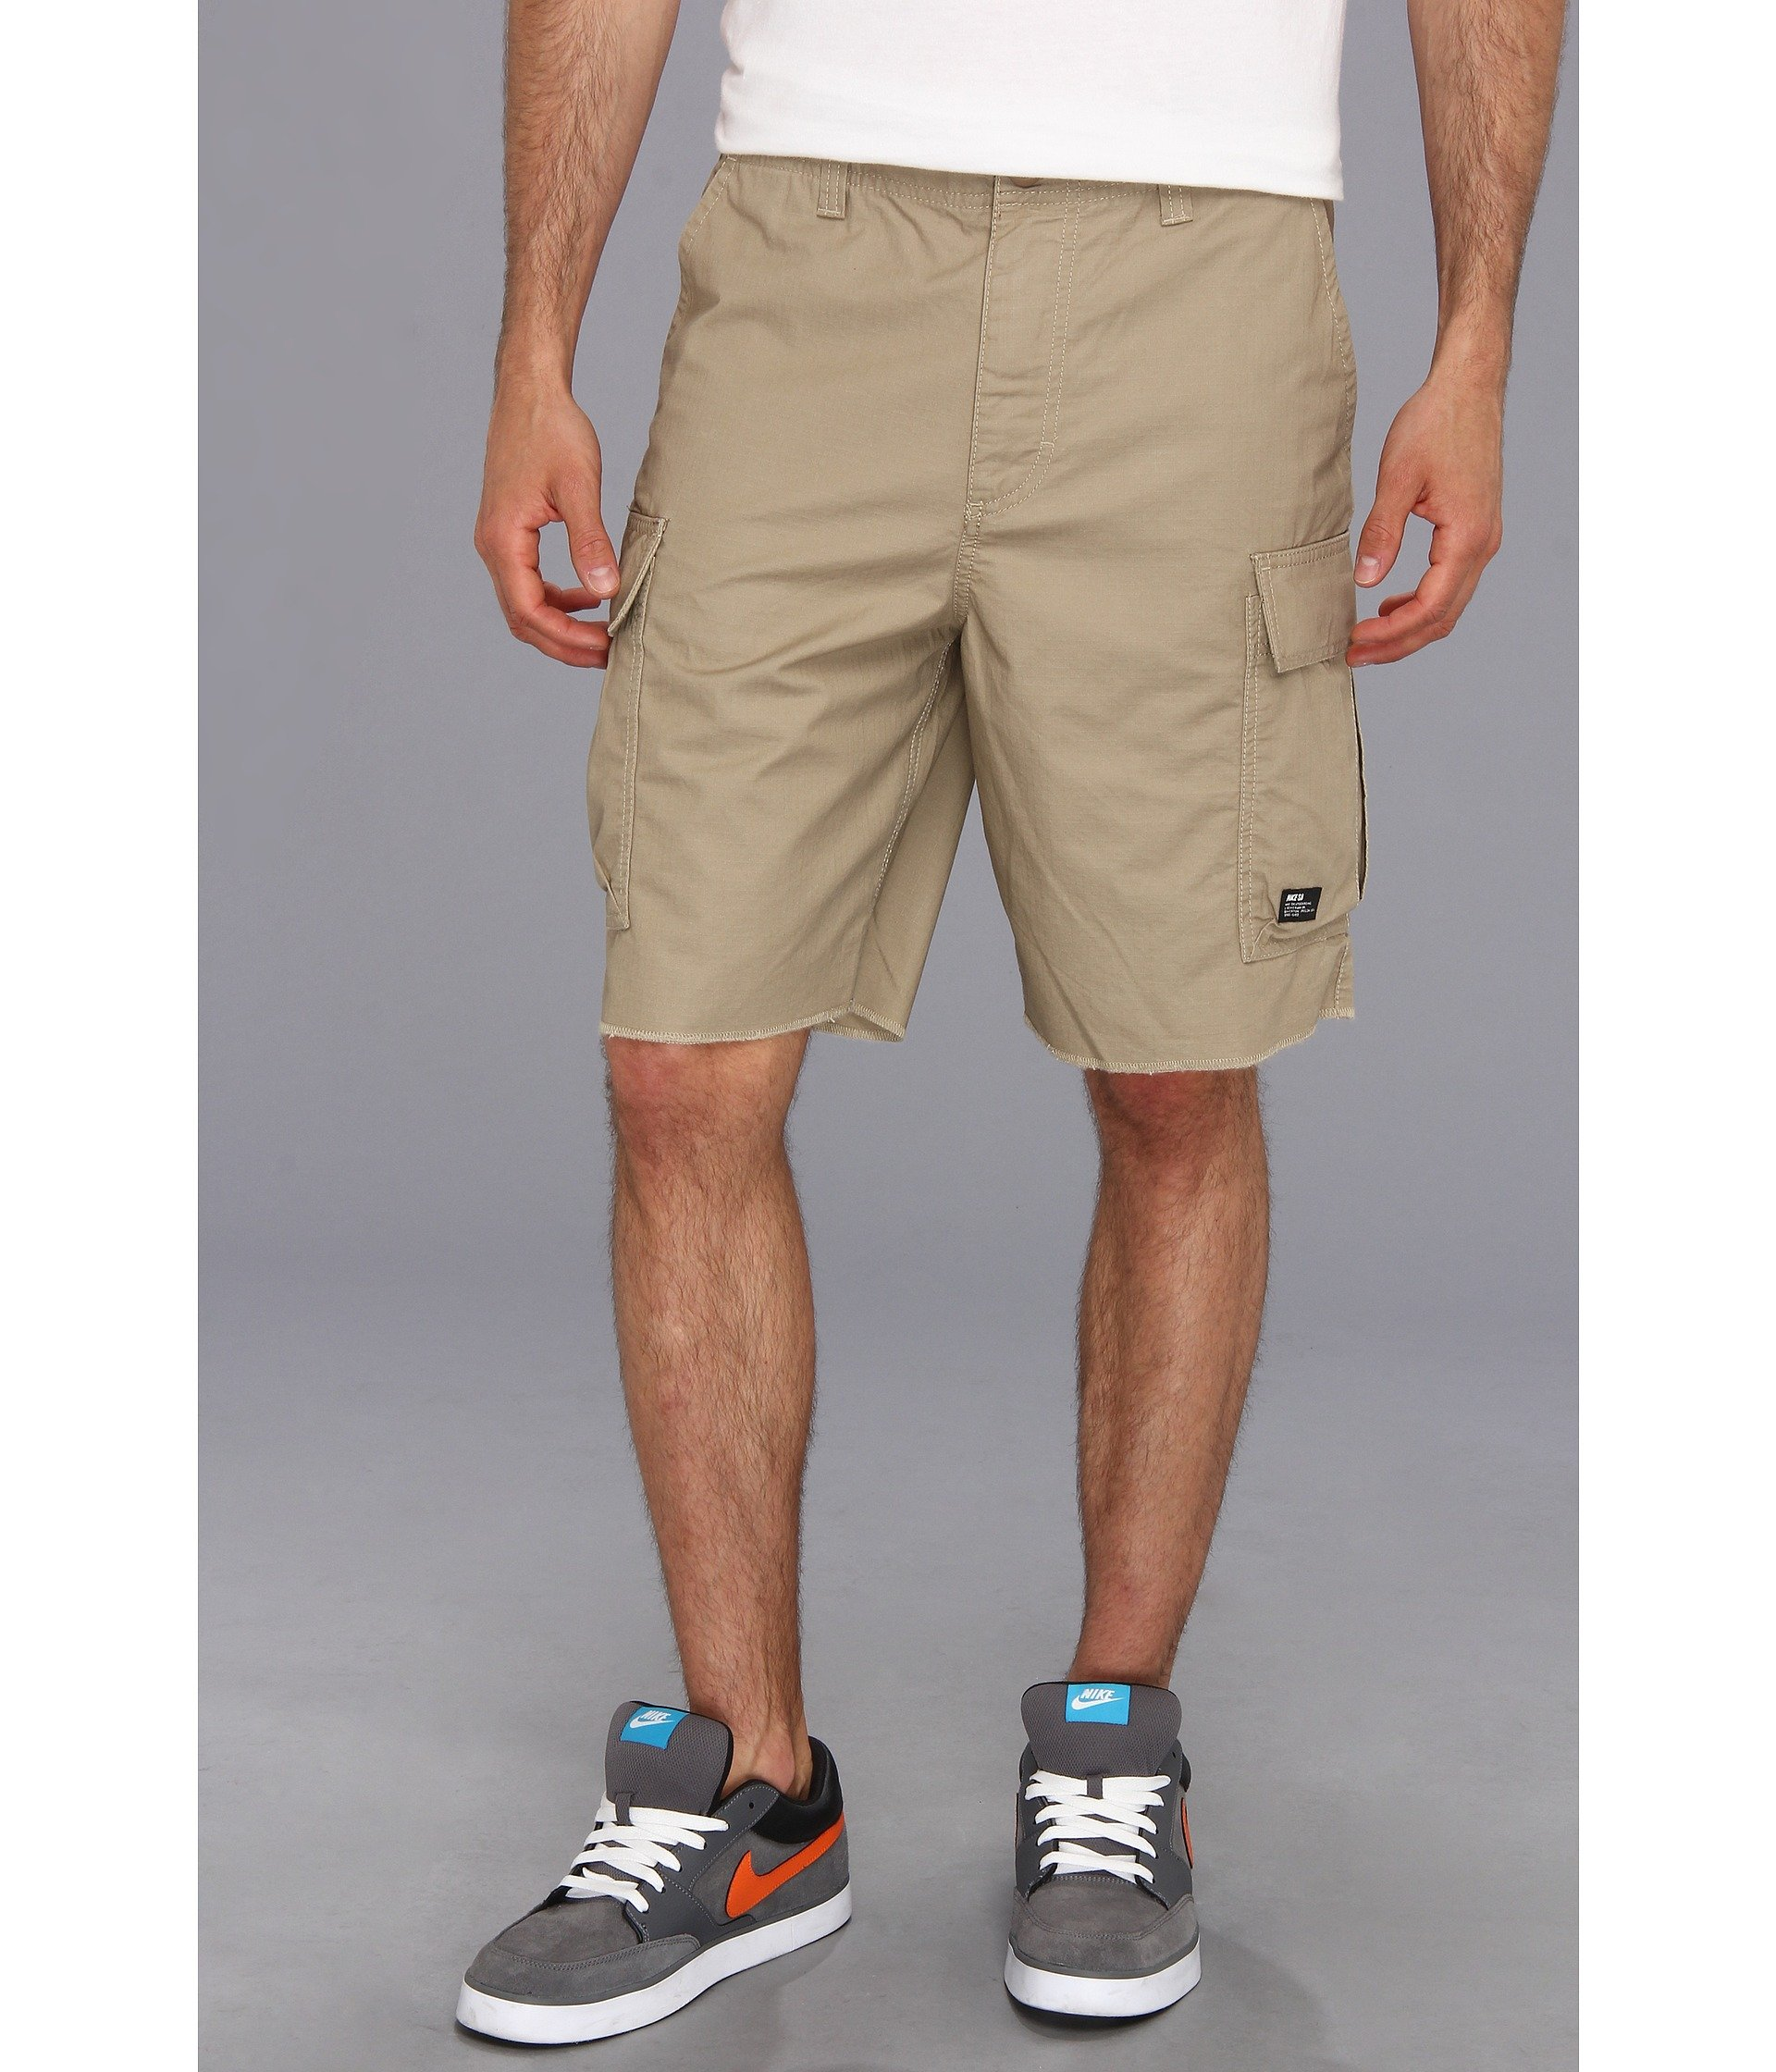 Nike Cargo Shorts Khaki - The Else